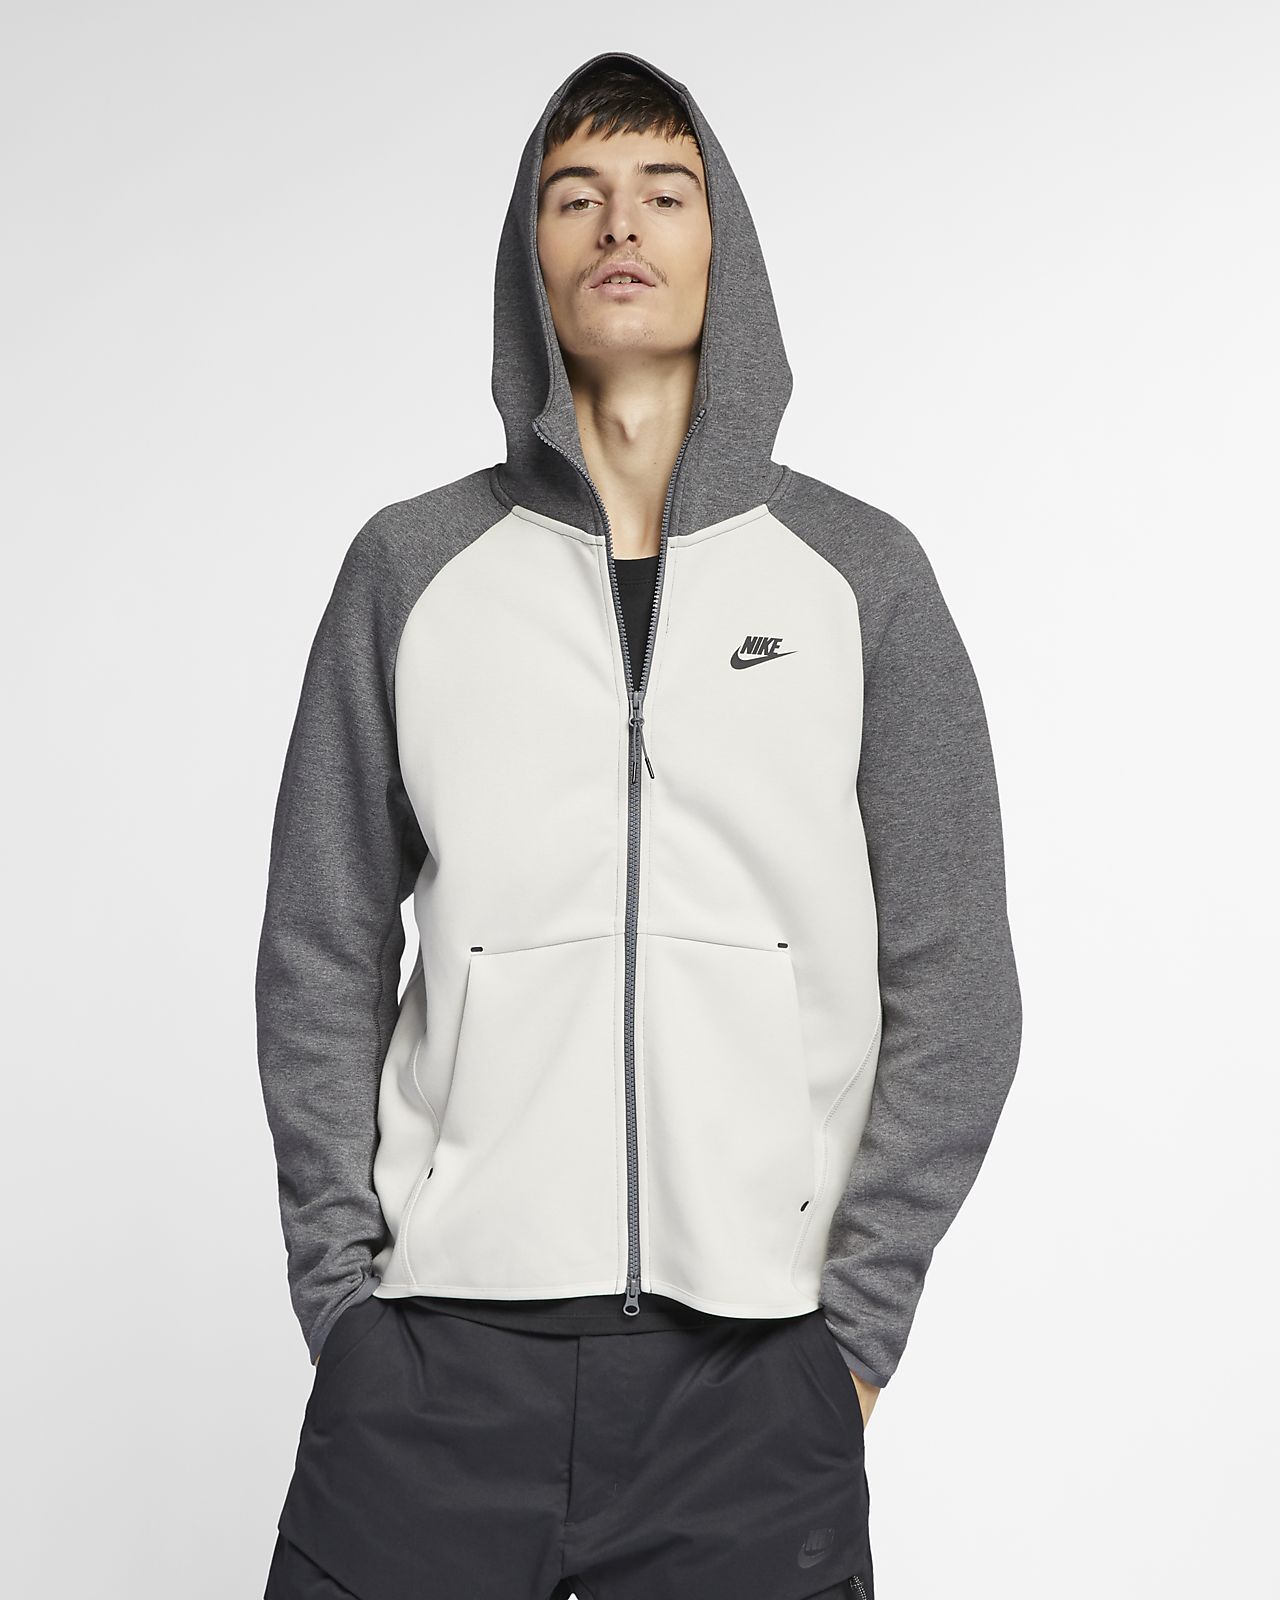 3c9e632c6a20 Nike Sportswear Tech Fleece Men s Full-Zip Hoodie. Nike.com MA